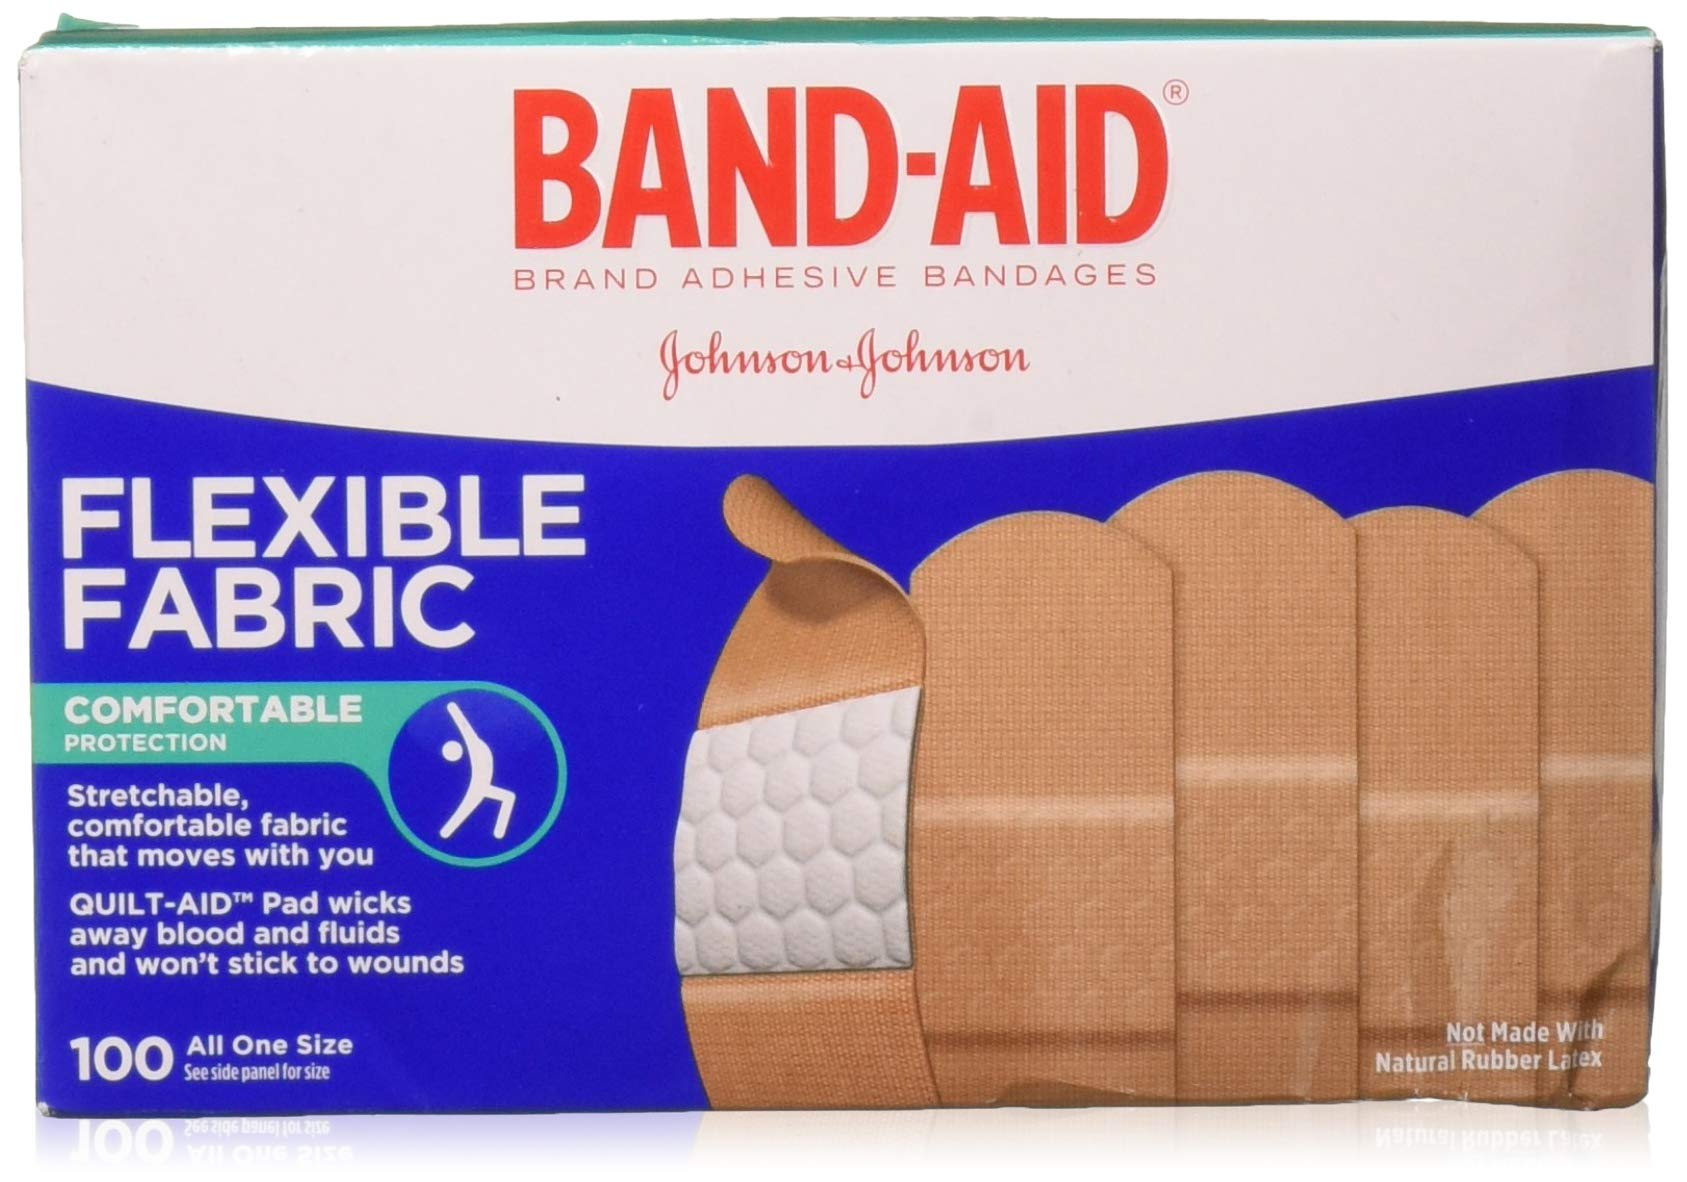 Band-Aid Adhesive Bandages, Flexible Fabric, All One Size 1 X 3, 100 Count (Pack of 3) by Band-Aid by Band-Aid